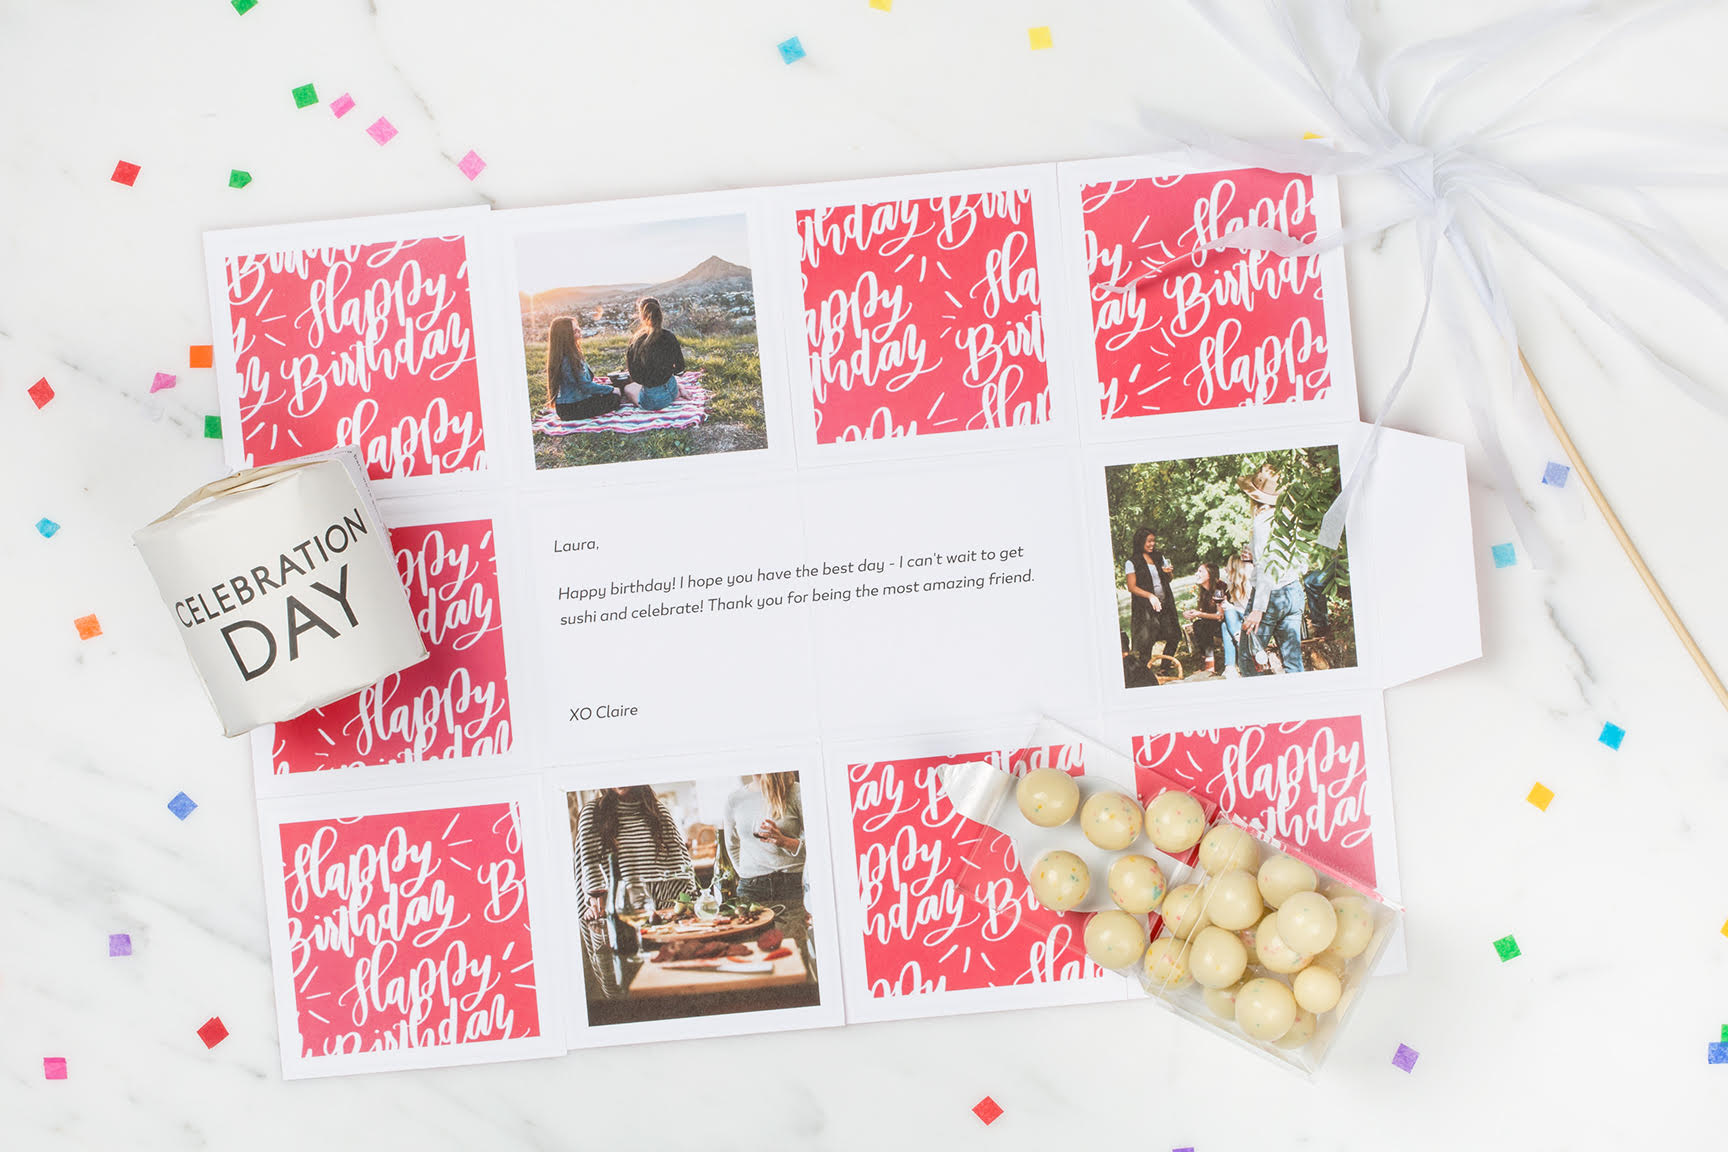 greetabl design - A fun & festive way to celebrate a birthday!